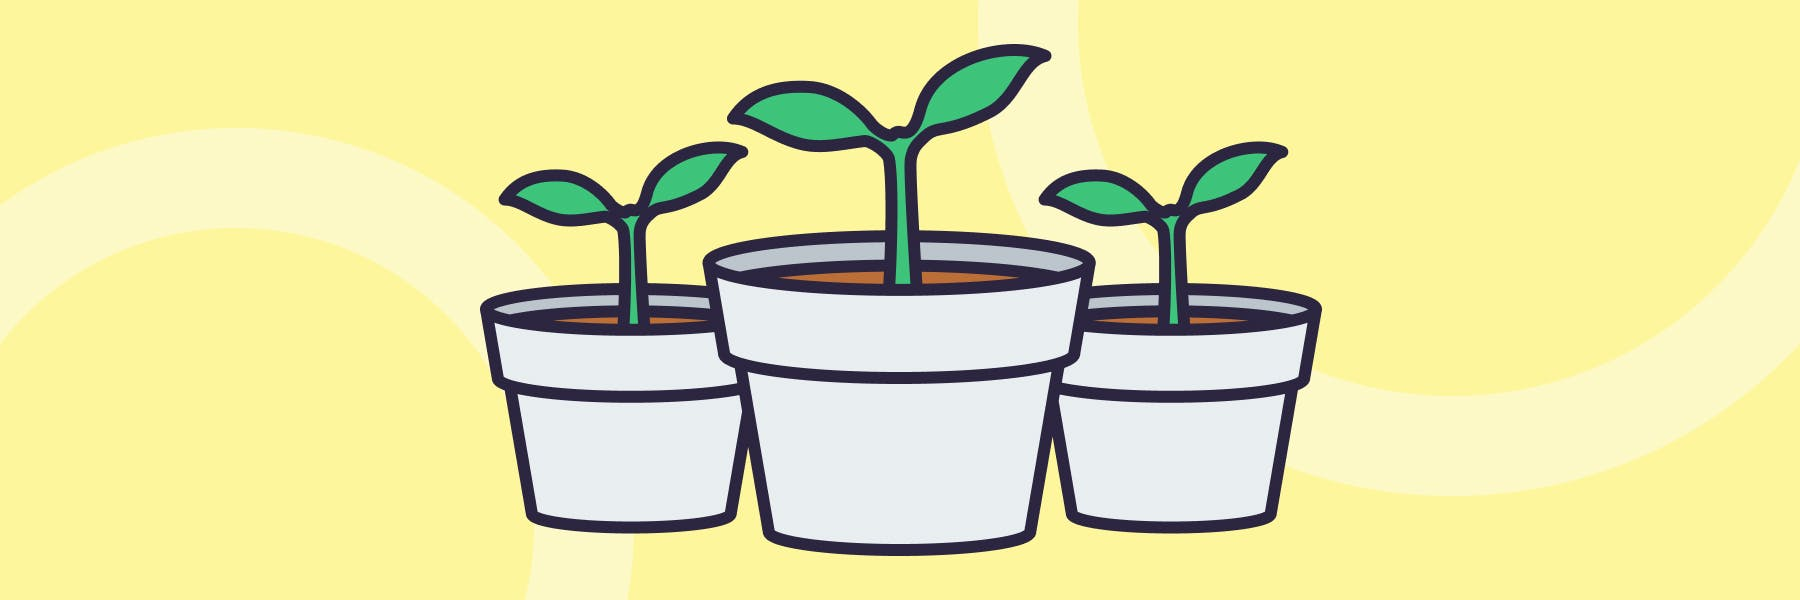 An illustration of three pots, each containing a strongly developing seedling